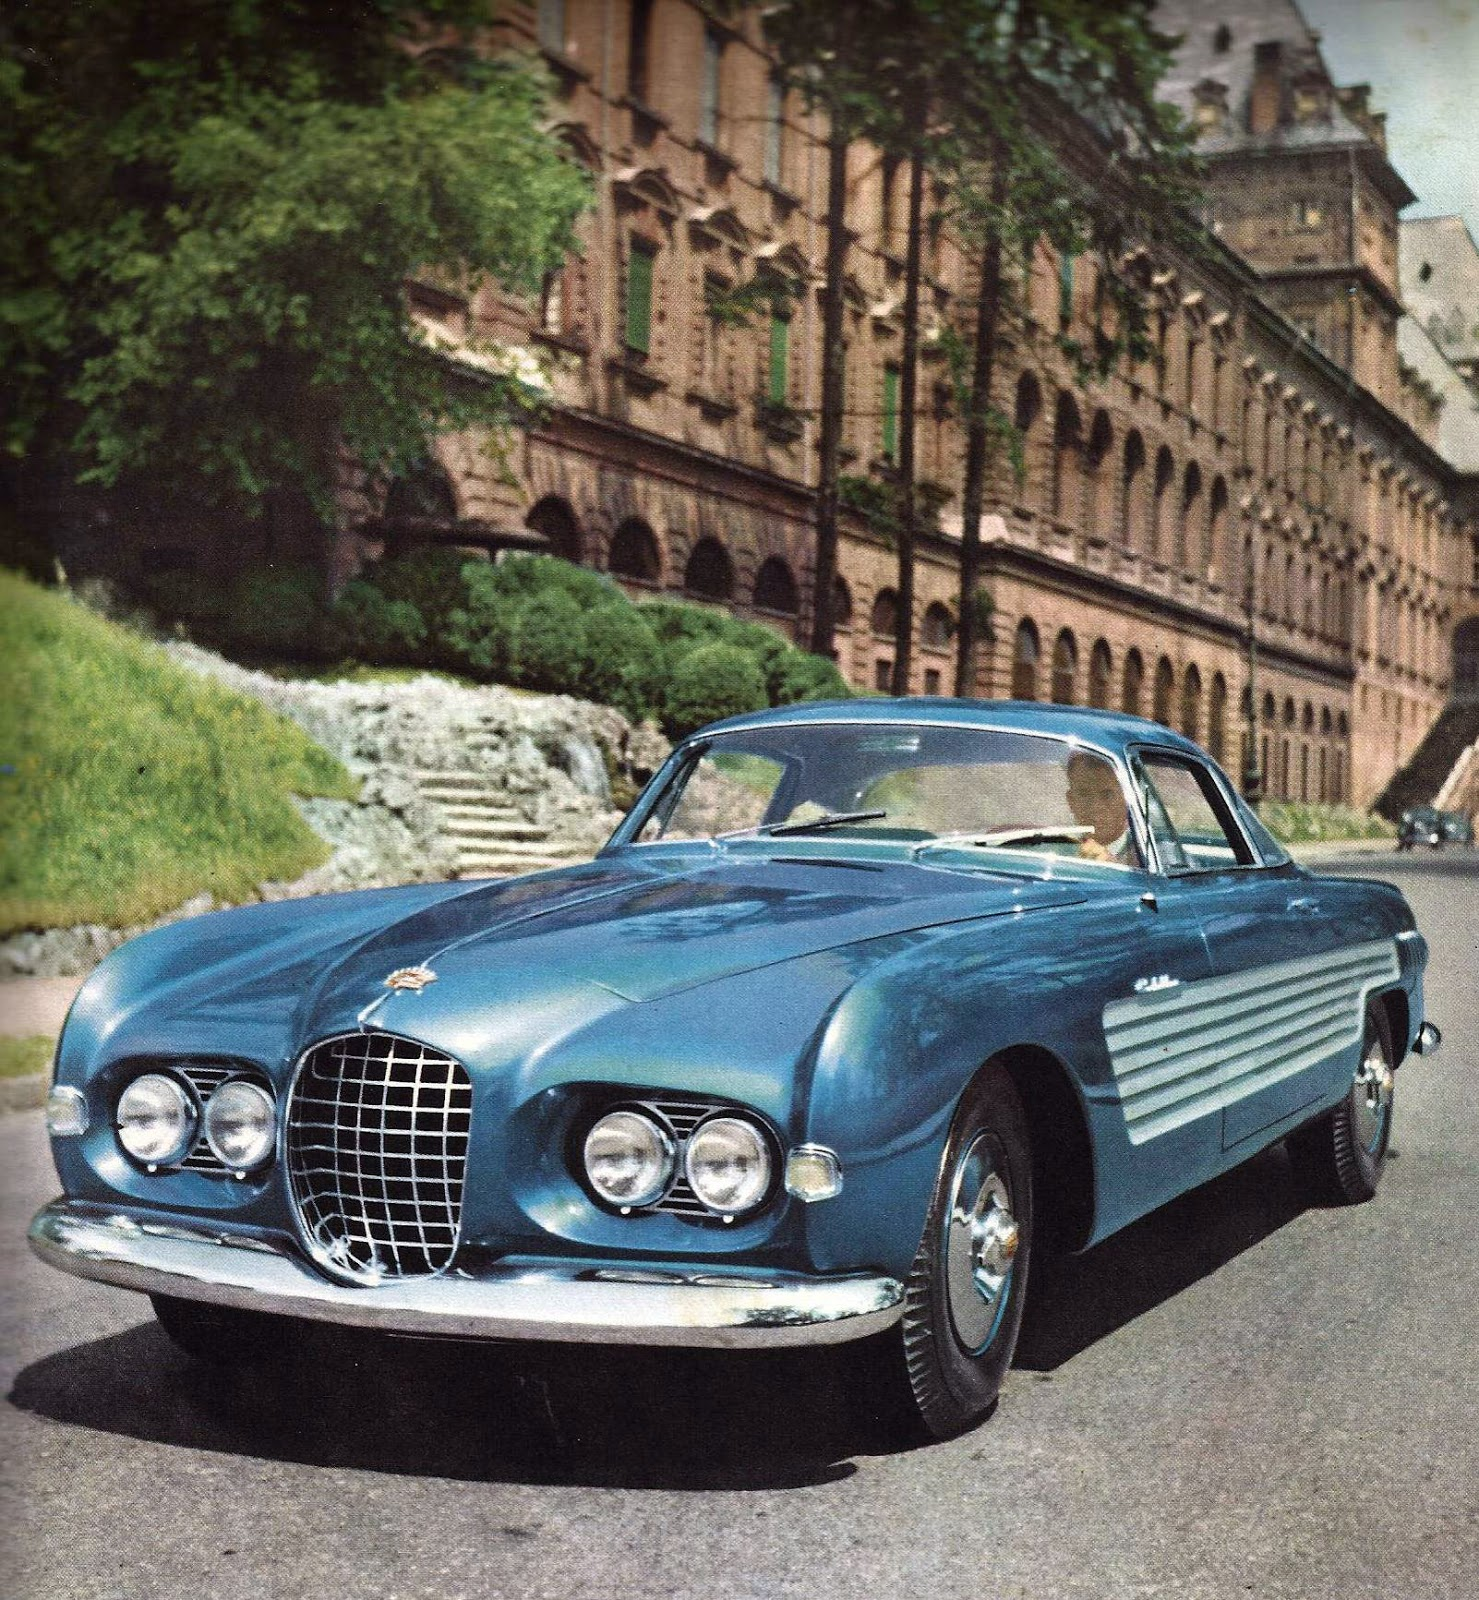 Poeschl On Cars Lovely Rita Cadillac Ghia